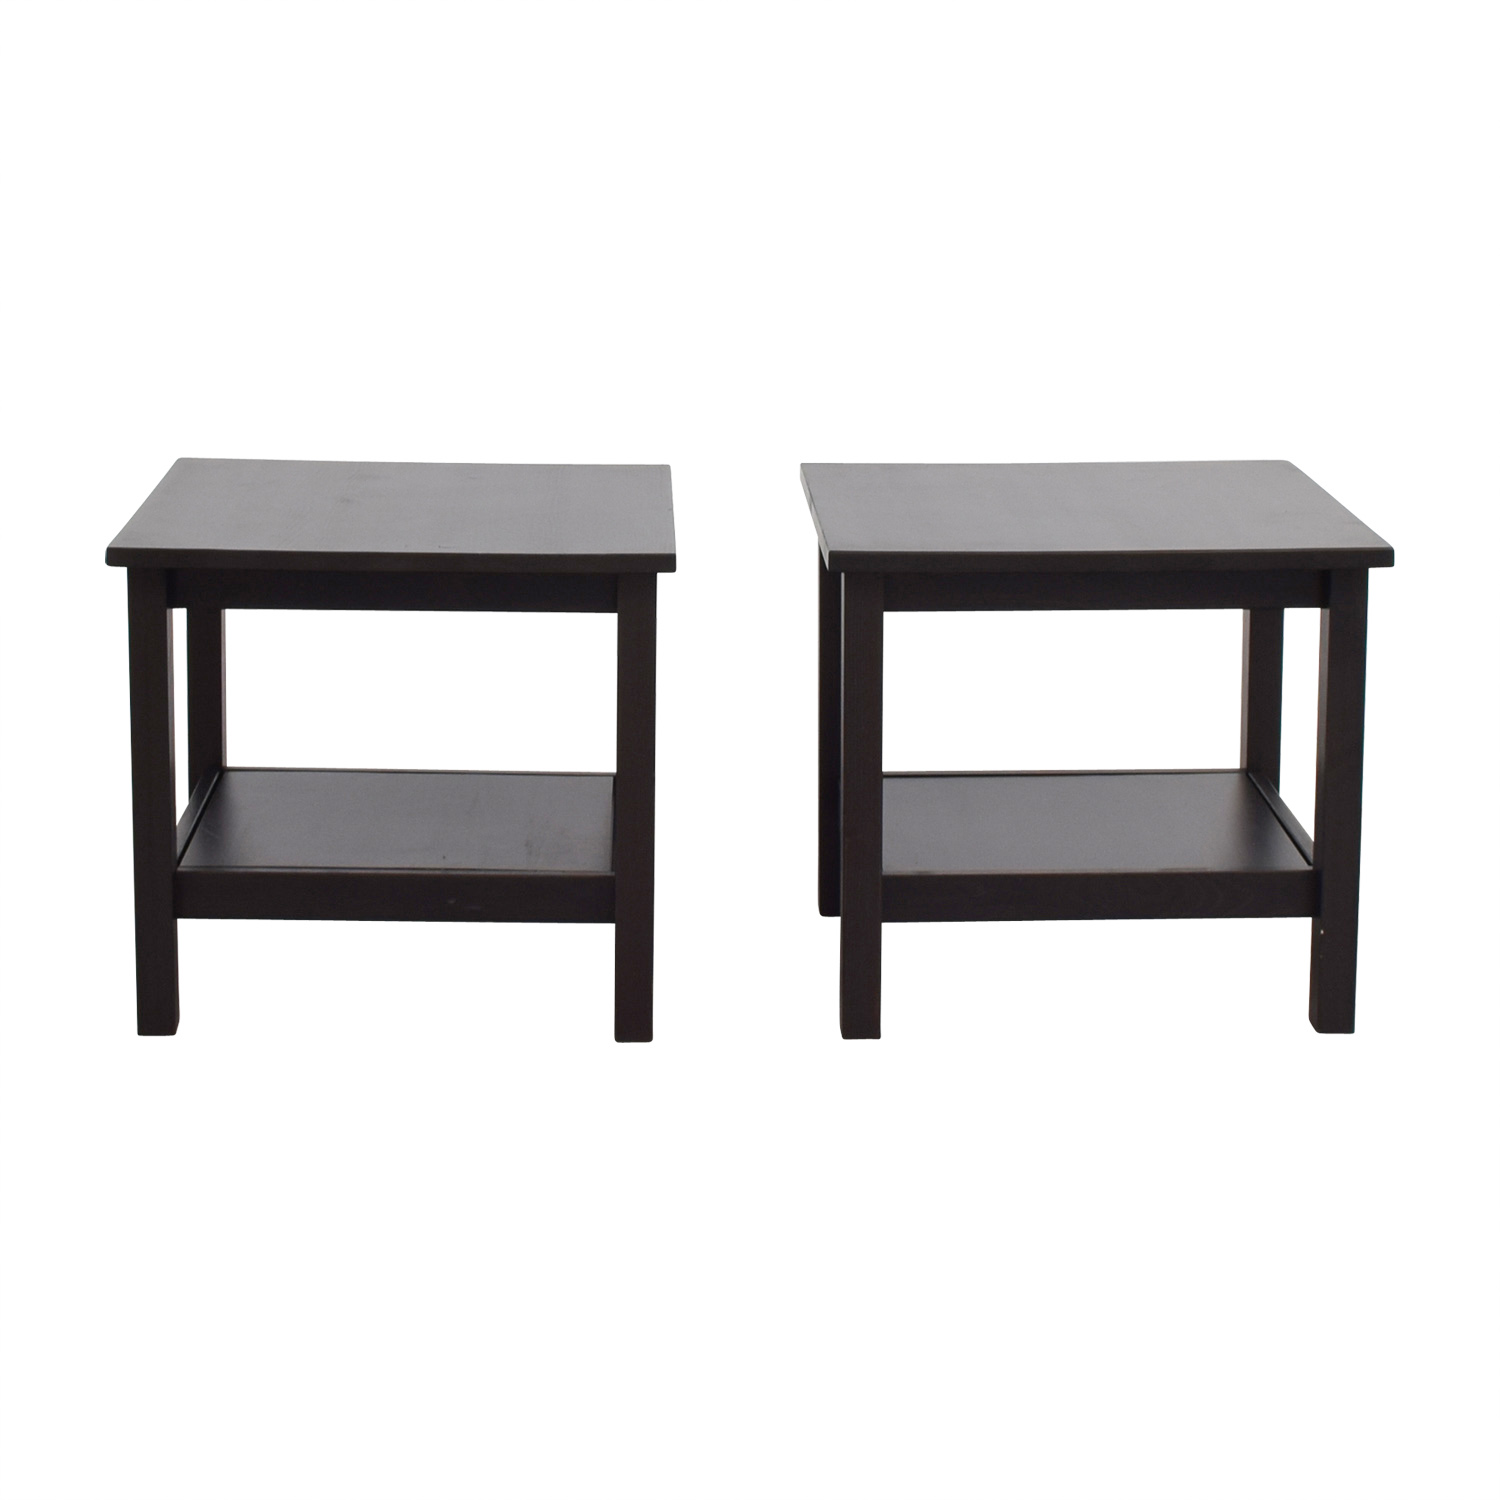 Buy Side Table Accent Tables Used Accent Tables For Sale